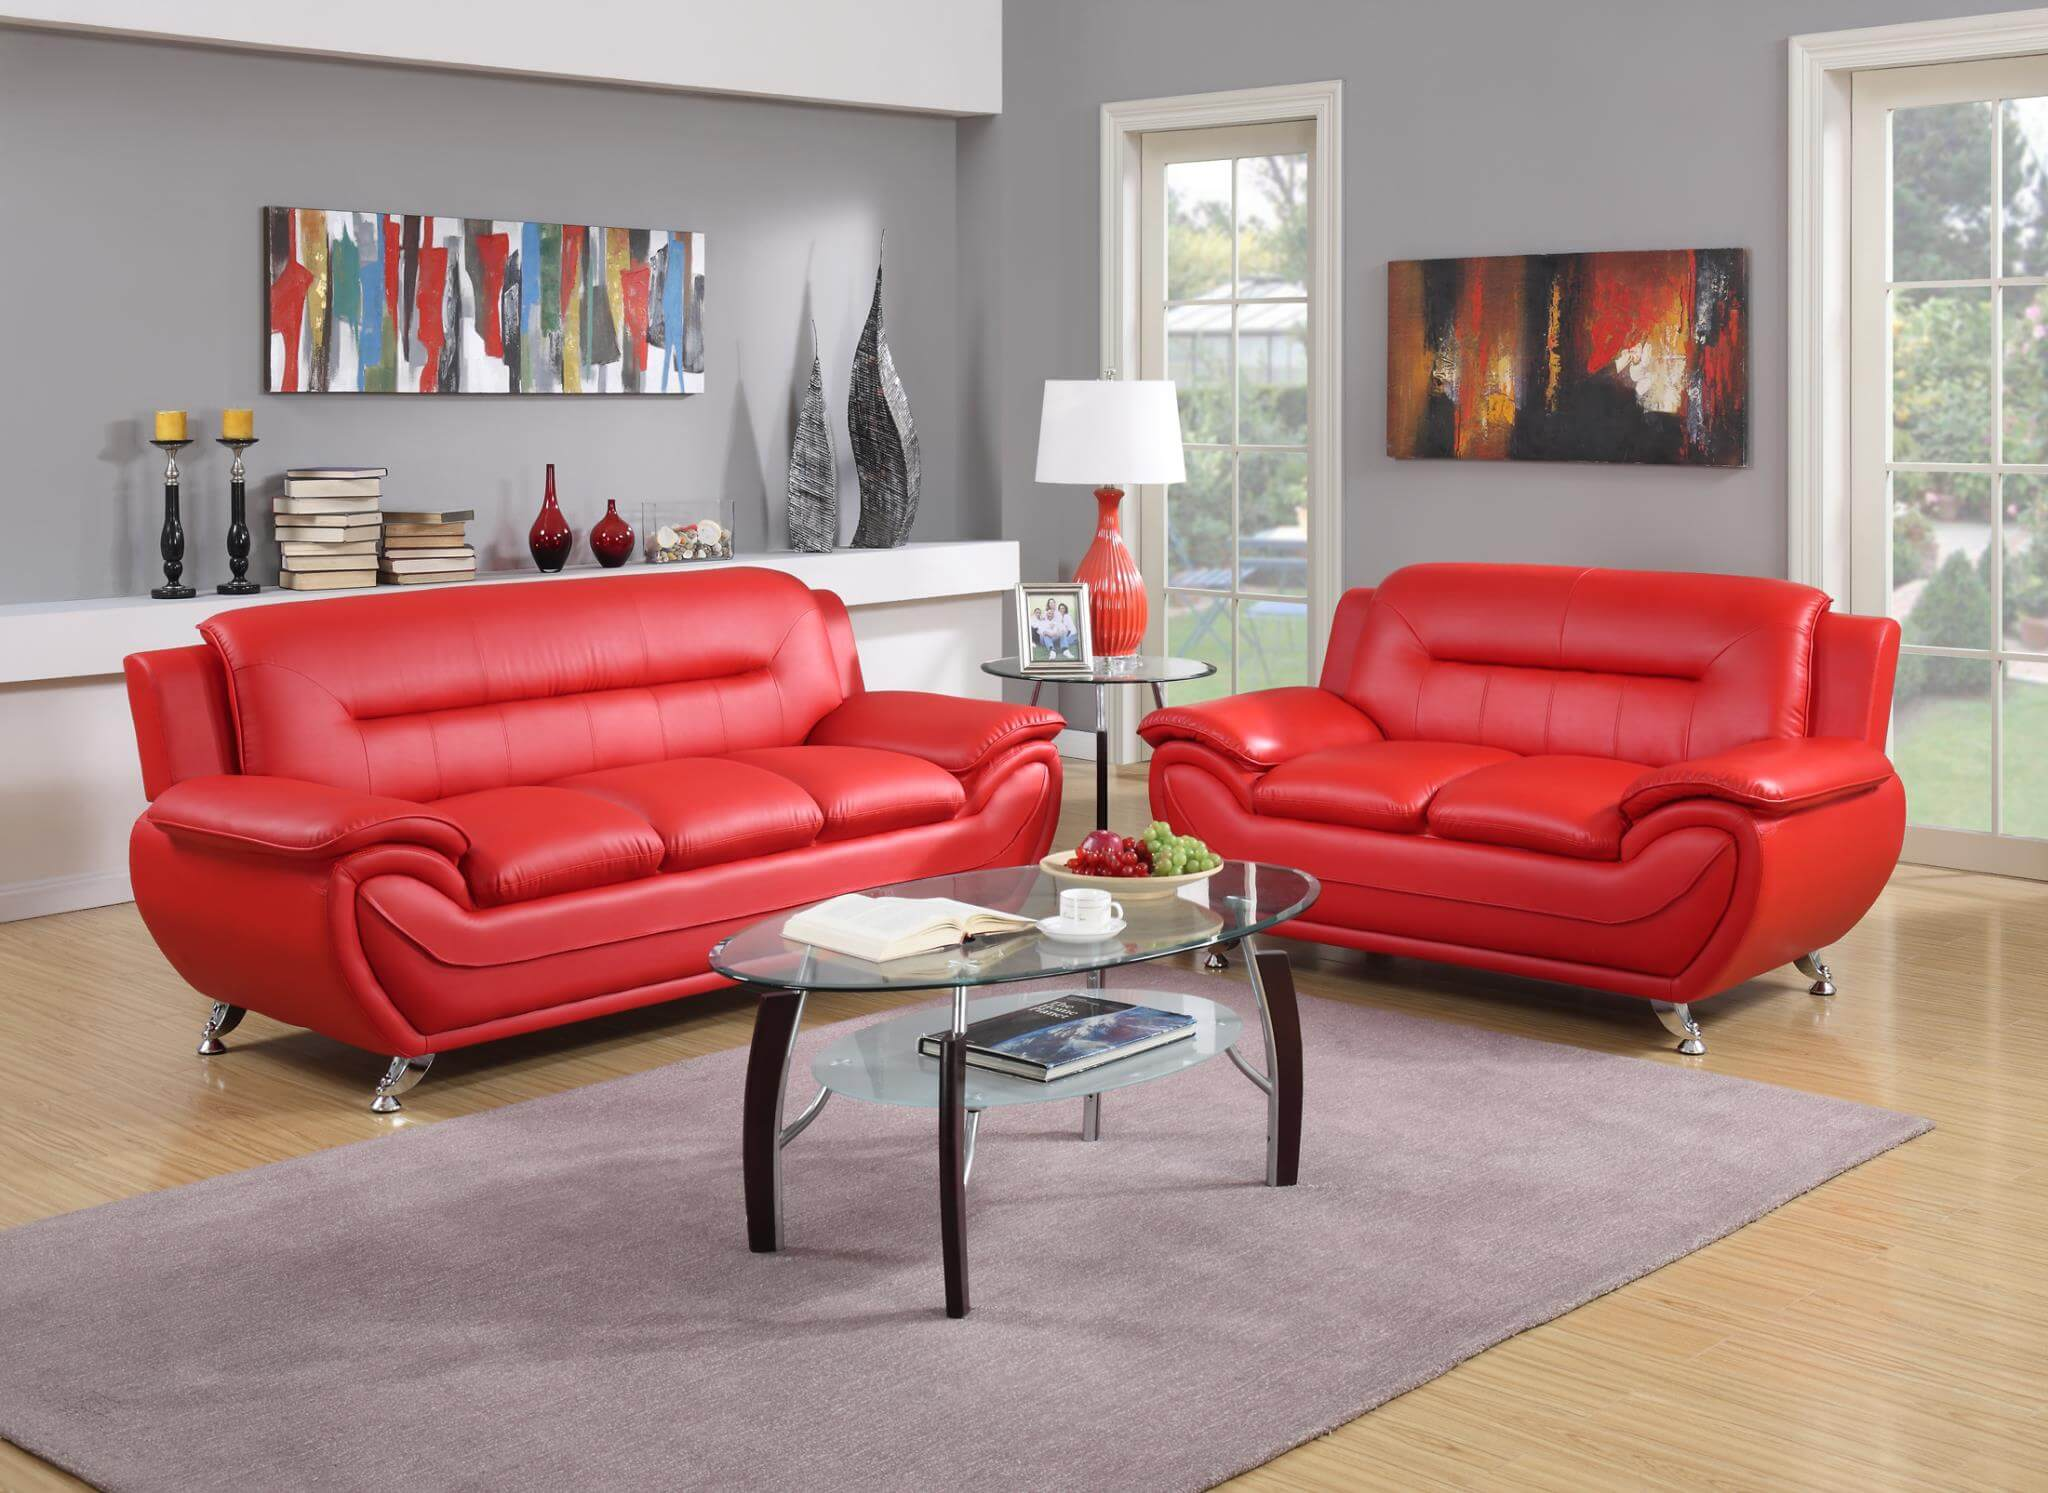 Contemporary Living Set Red Contemporary Living Room Set Leather Living Room Sets